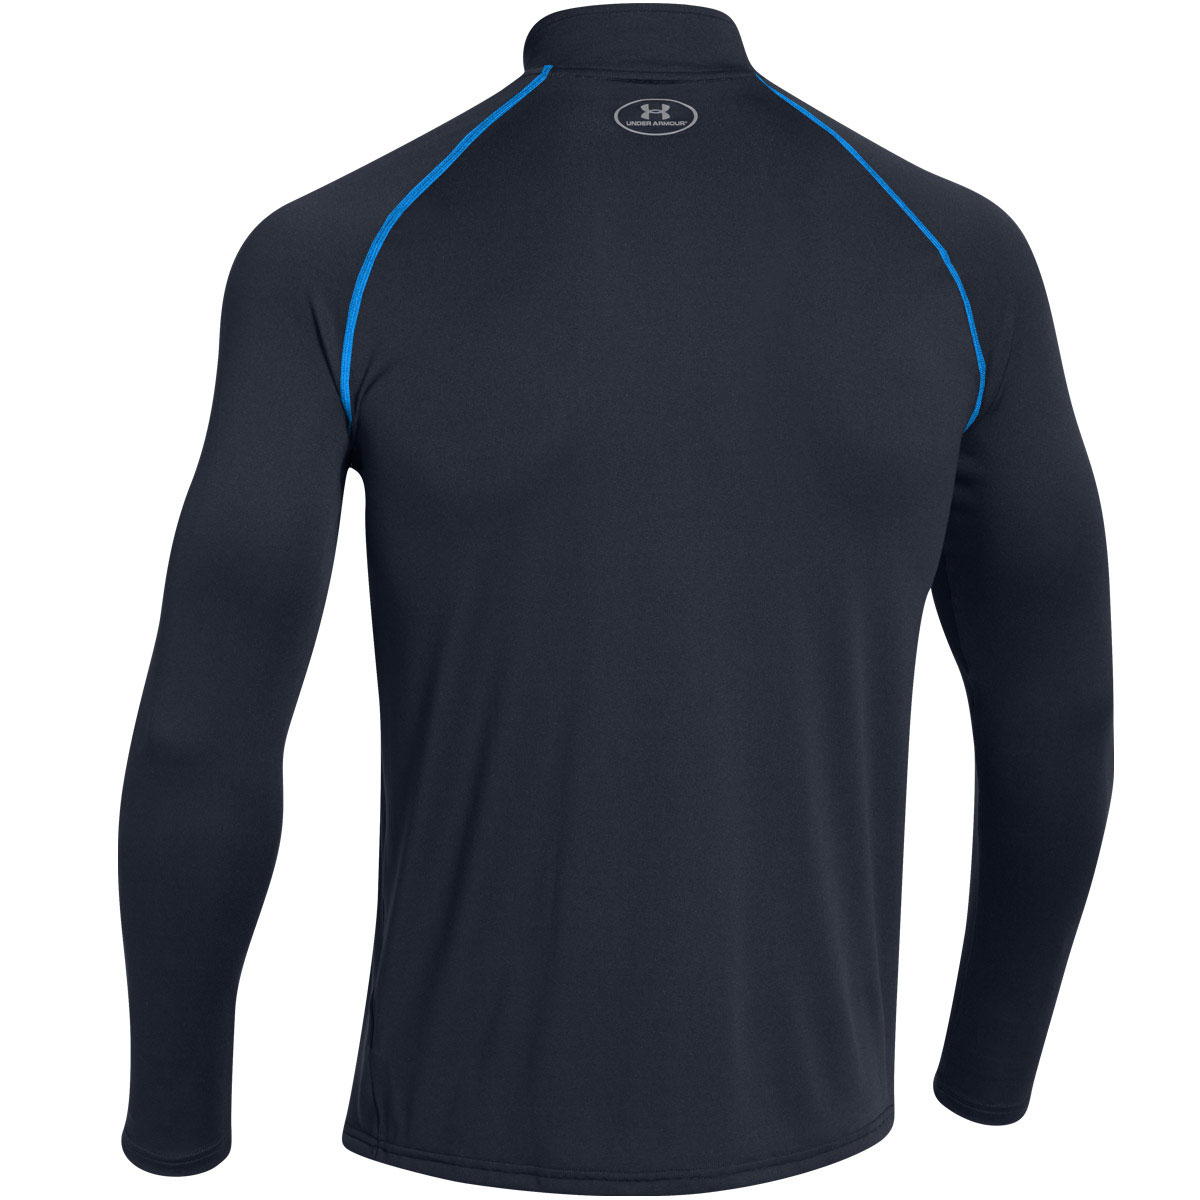 Under-Armour-Mens-UA-Tech-1-4-Zip-Long-Sleeve-Top-Workout-Layer-27-OFF-RRP thumbnail 17